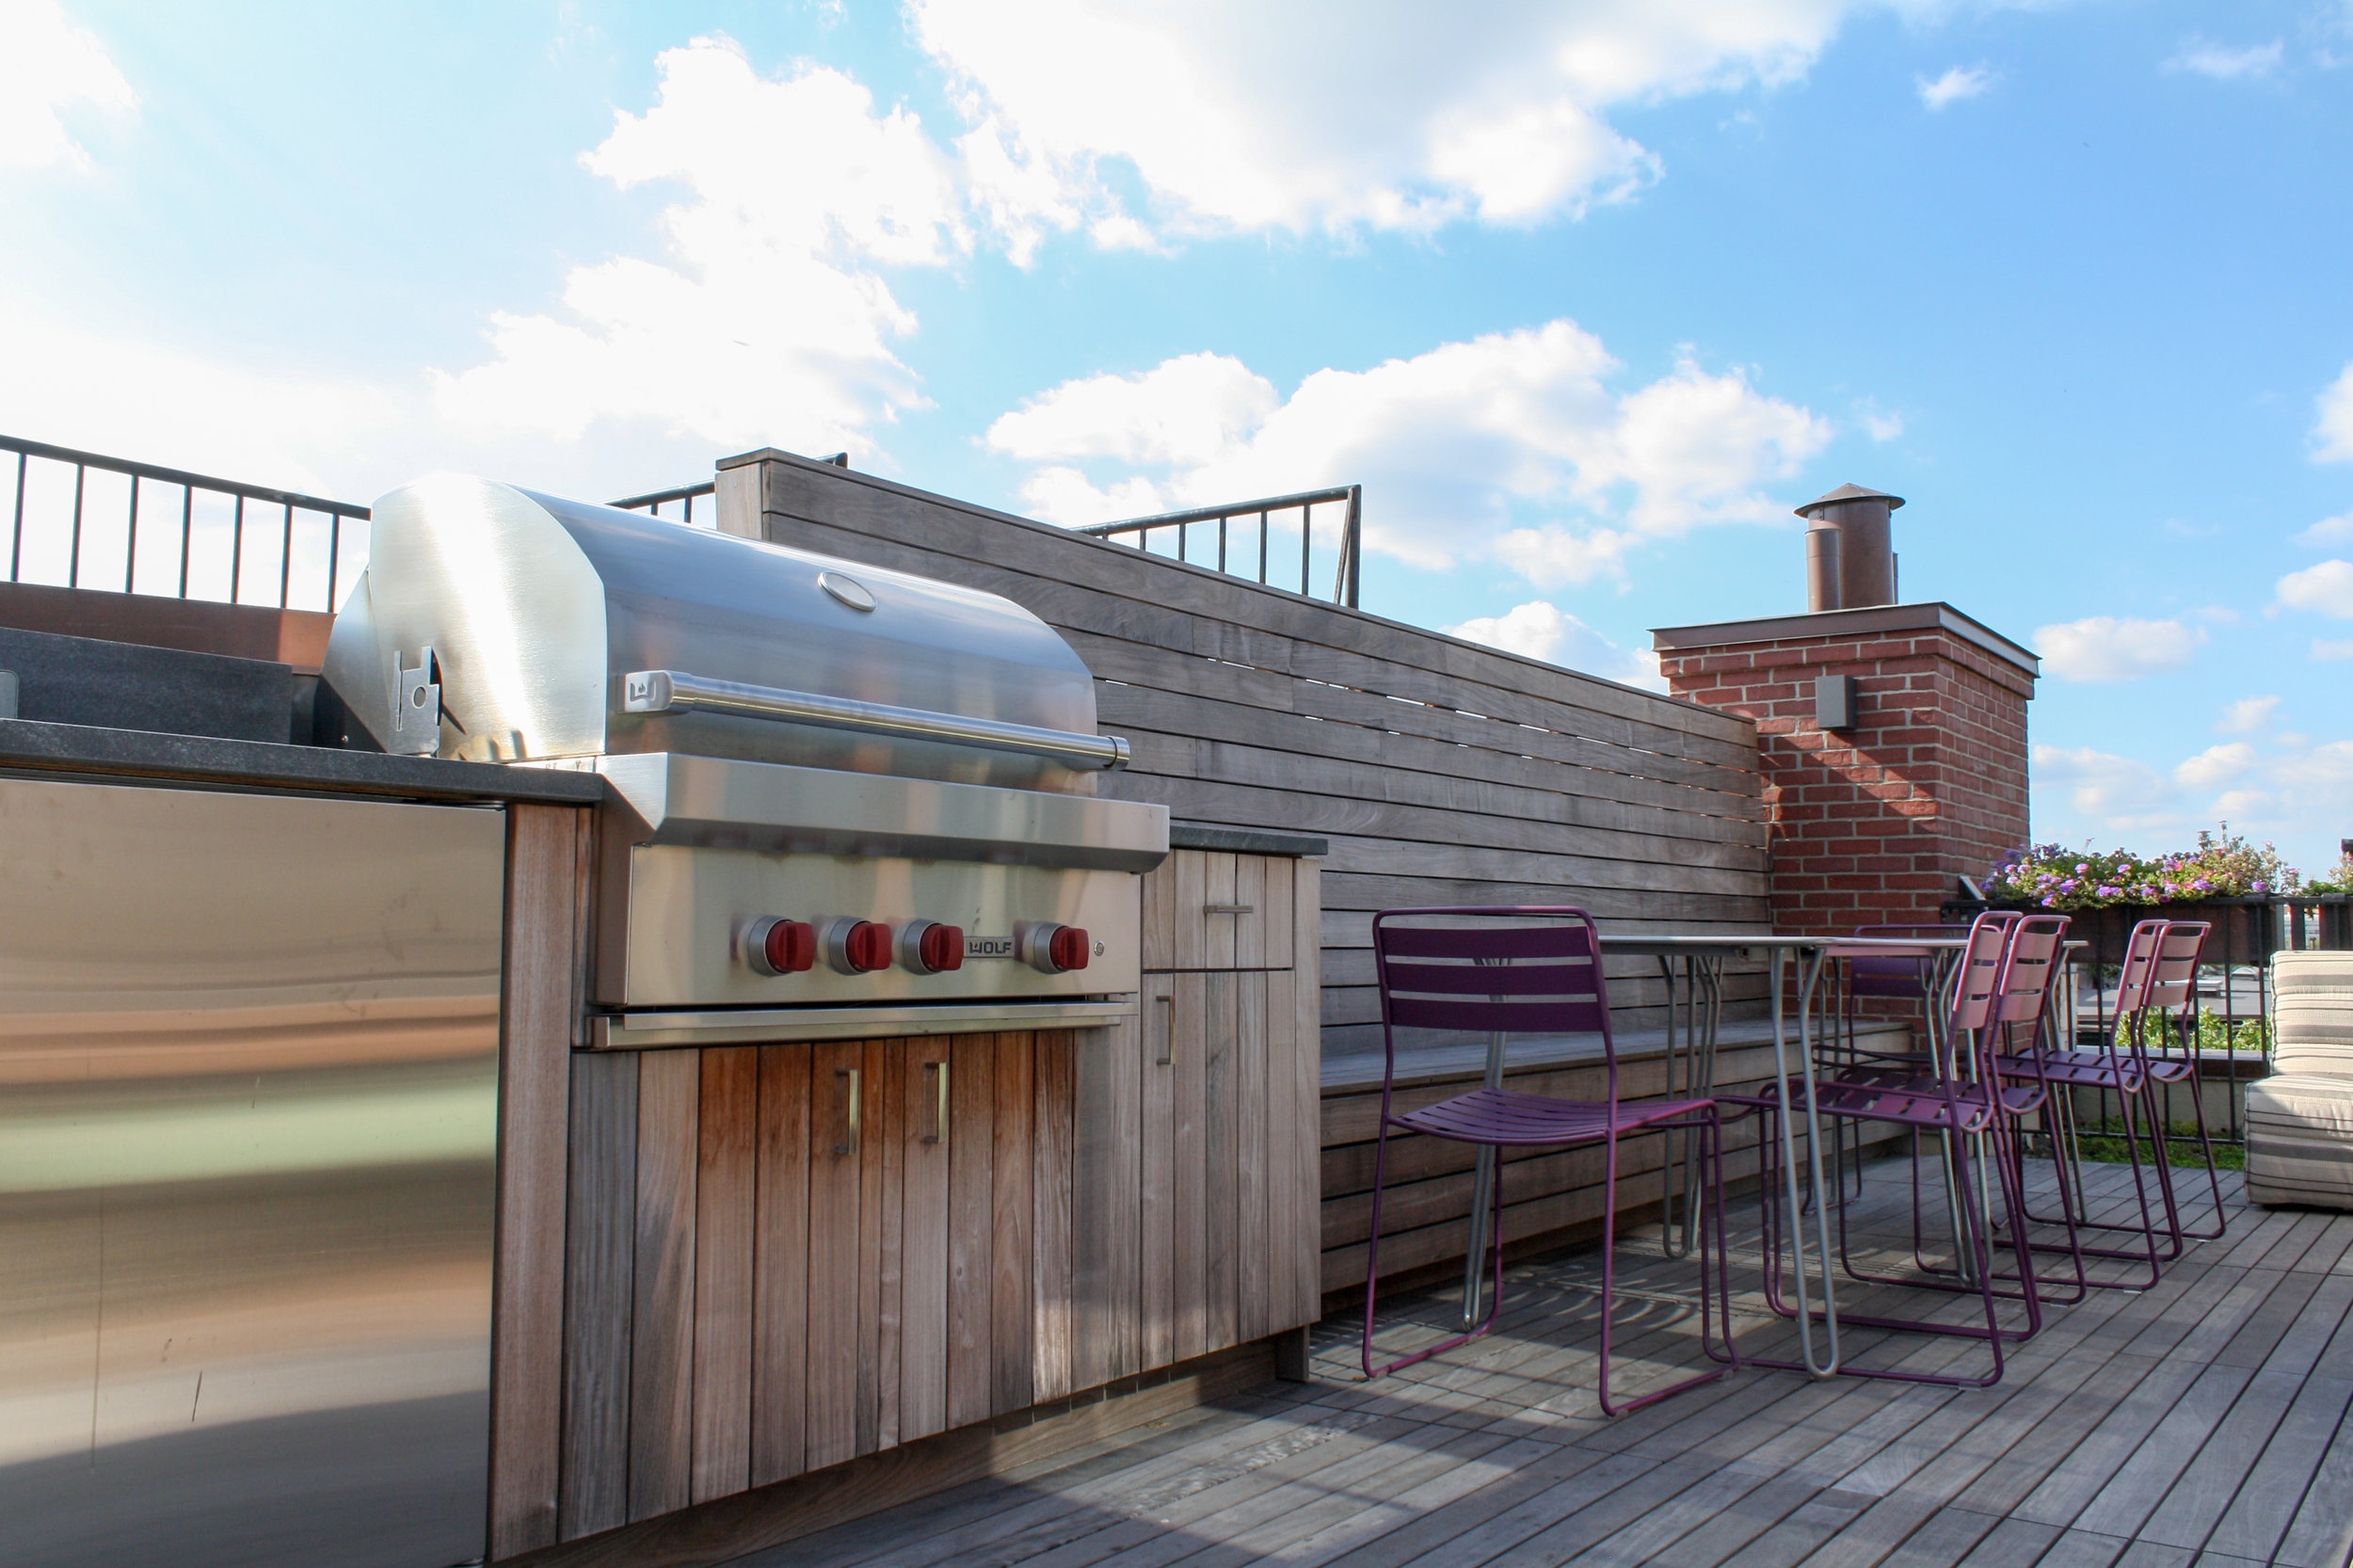 recover-green-roofs-residential-roof-deck-kitchen-44.jpg